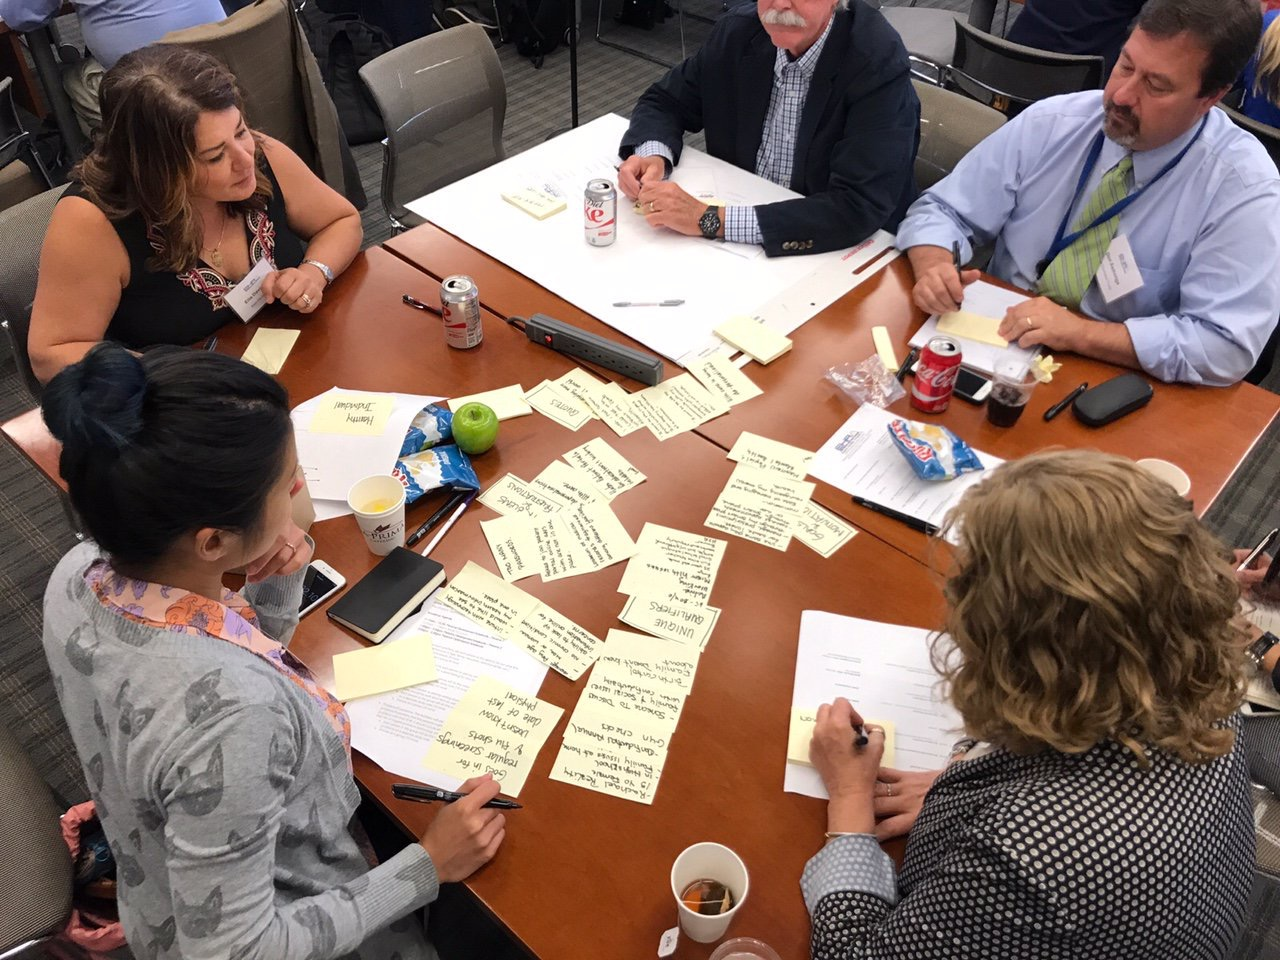 Group of stakeholders brainstorming about user needs and characteristics